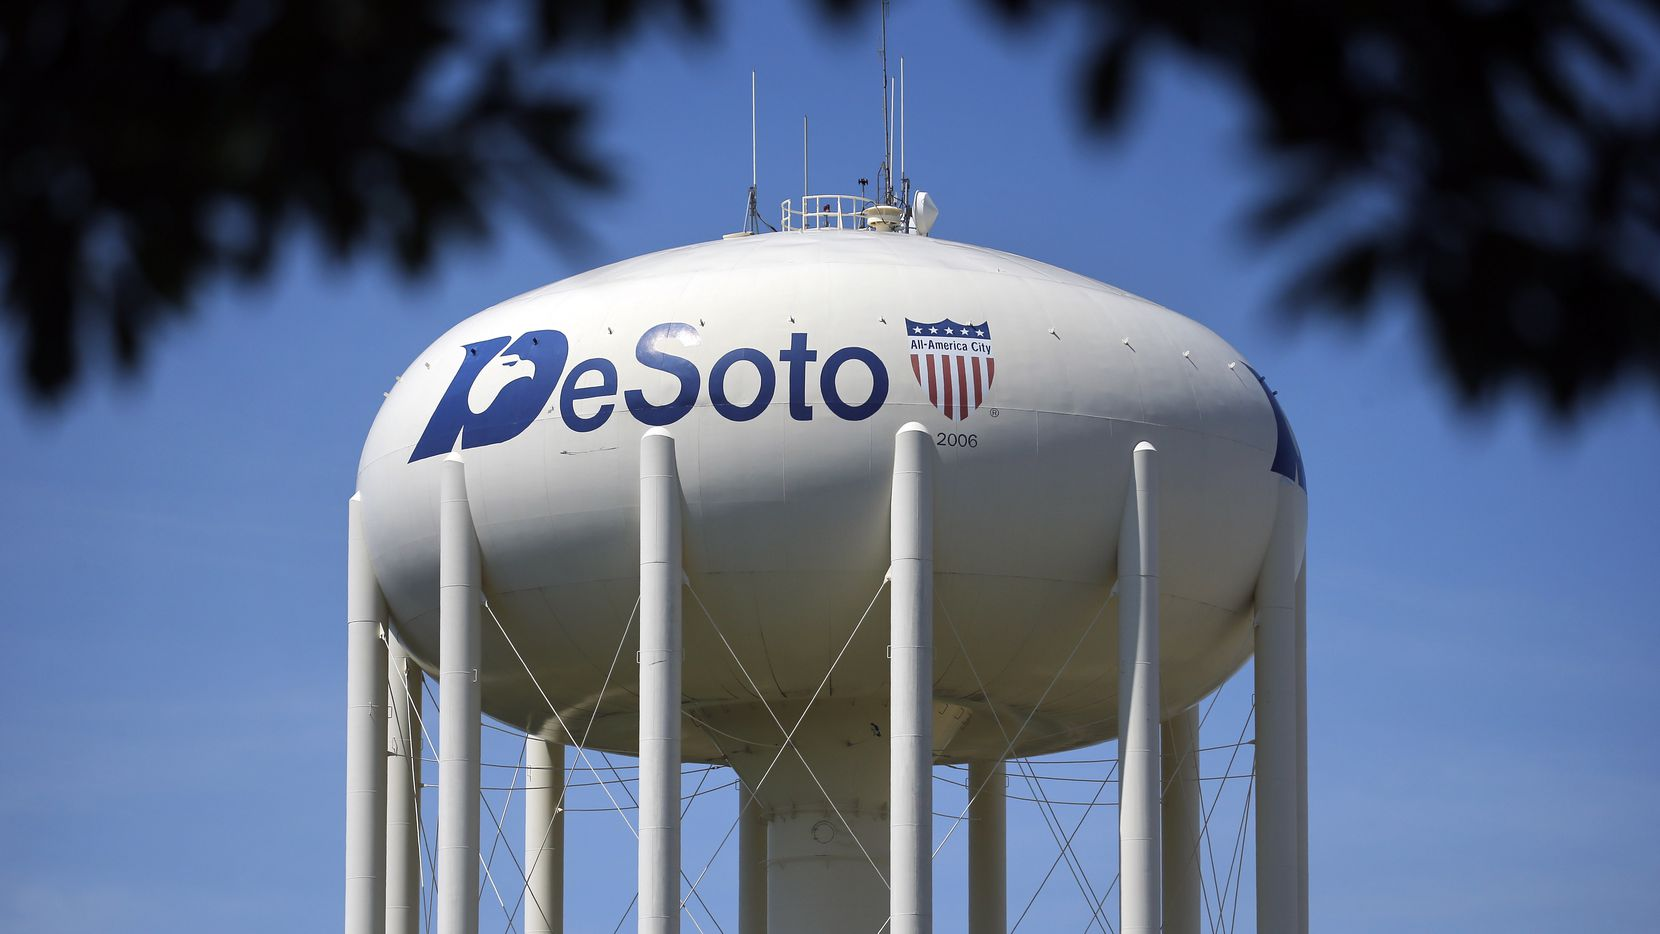 A City of DeSoto water tower is pictured in DeSoto, Texas, Wednesday, June 24, 2020.